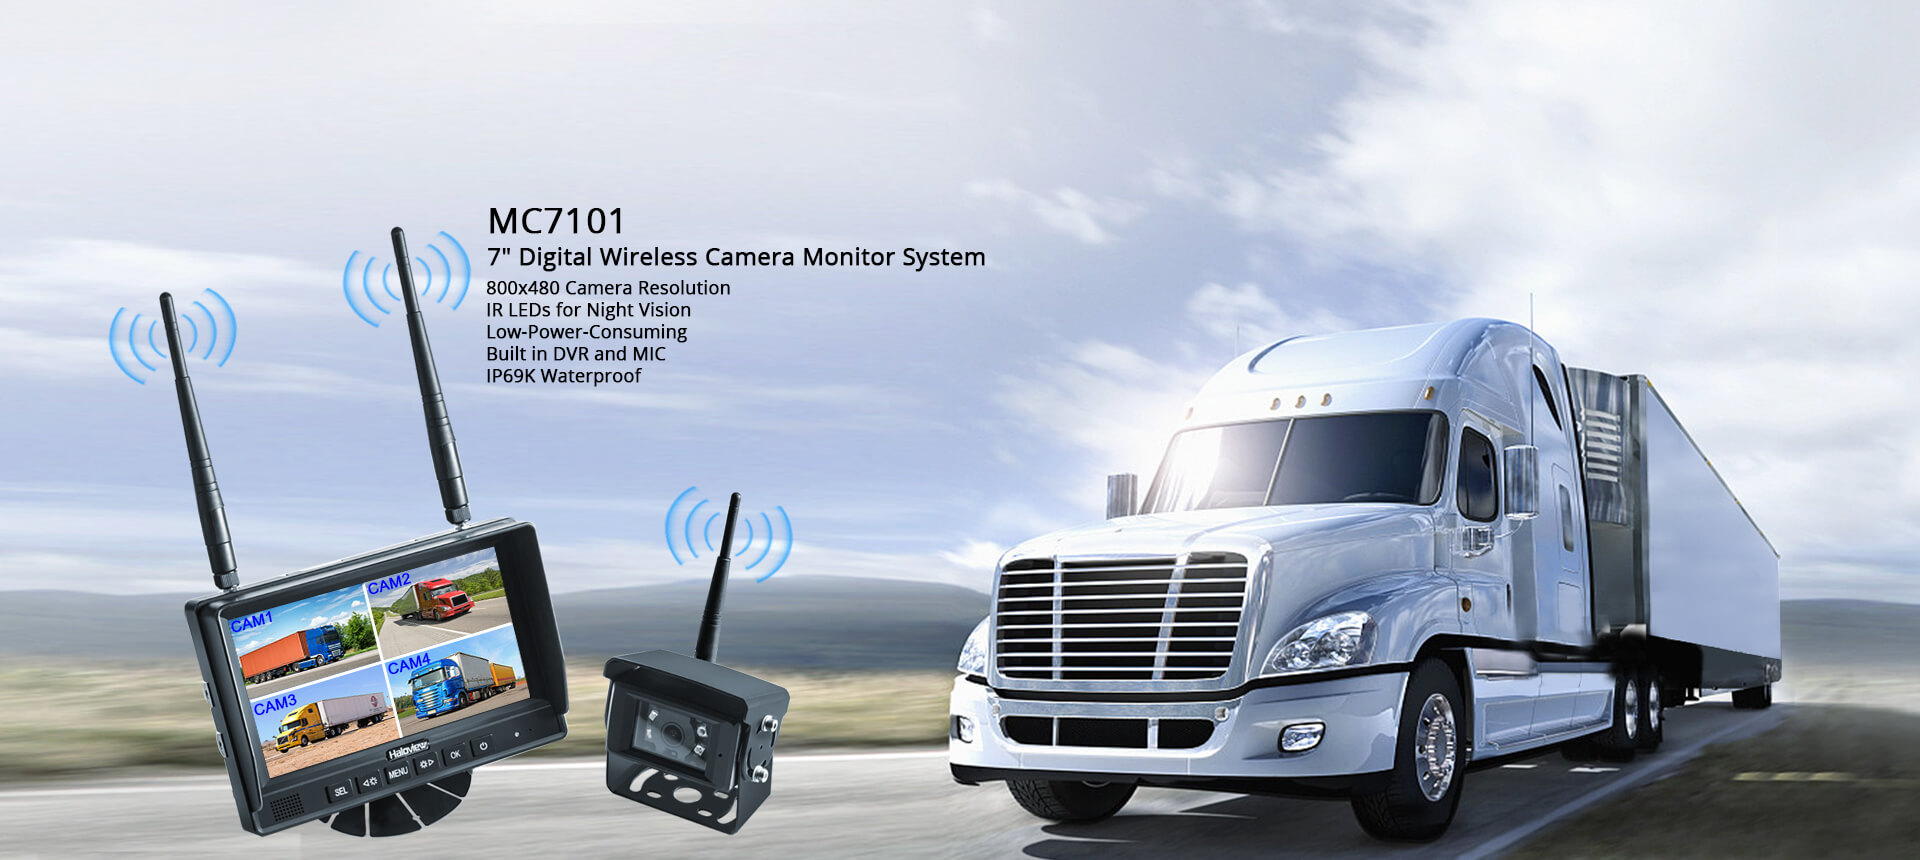 480P Digital Backup Camera System MC7101 home banner